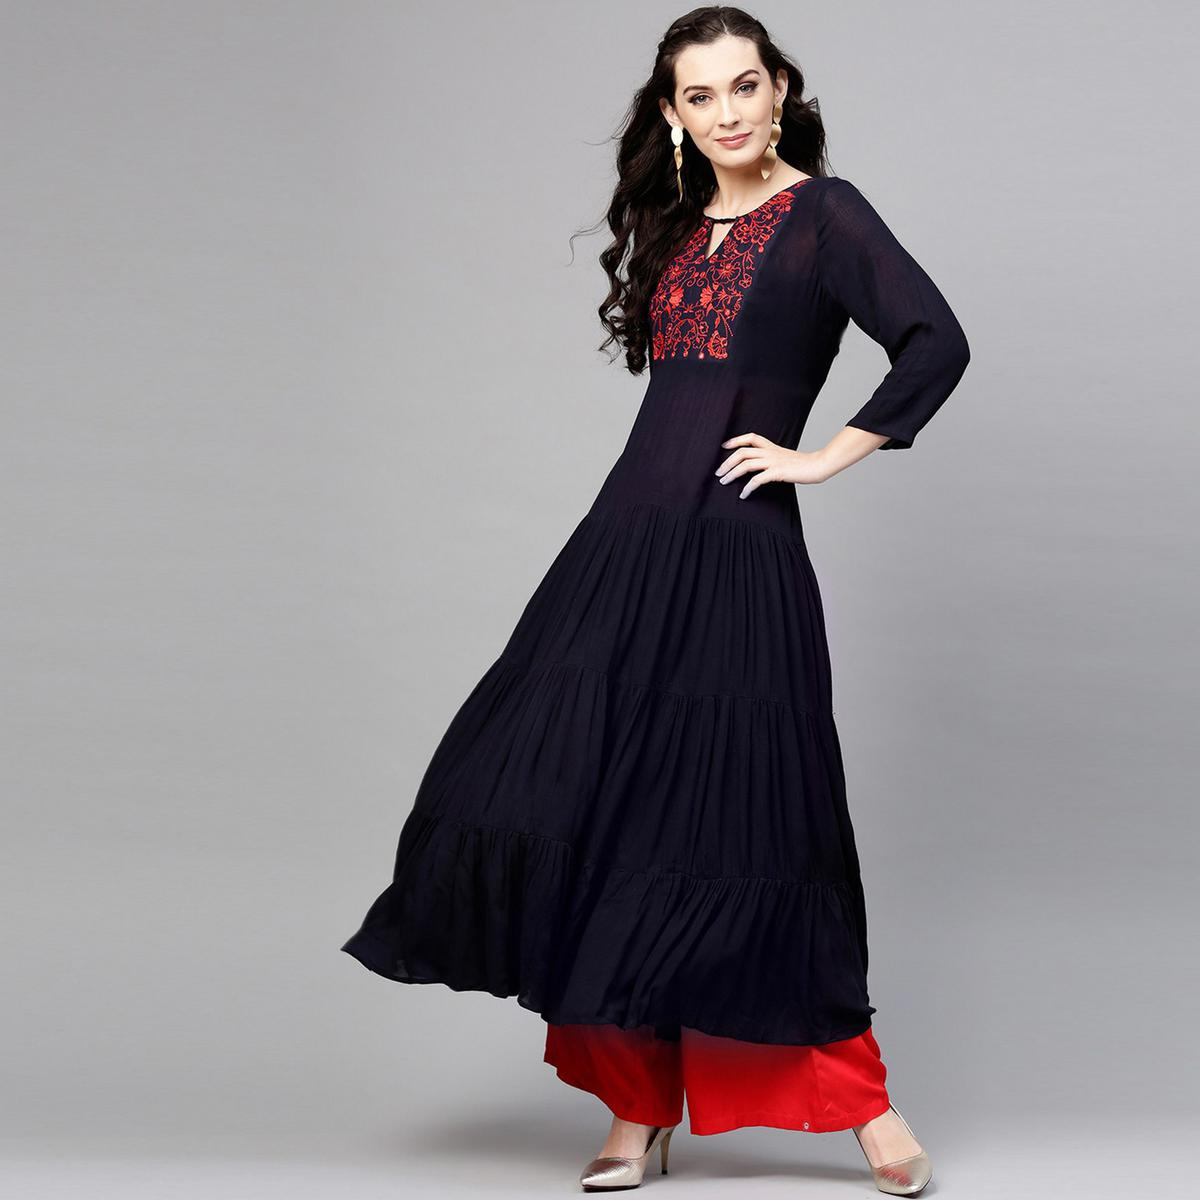 Pleasant Black Colored Party Wear Floral Embroidered Rayon-Crepe Kurti